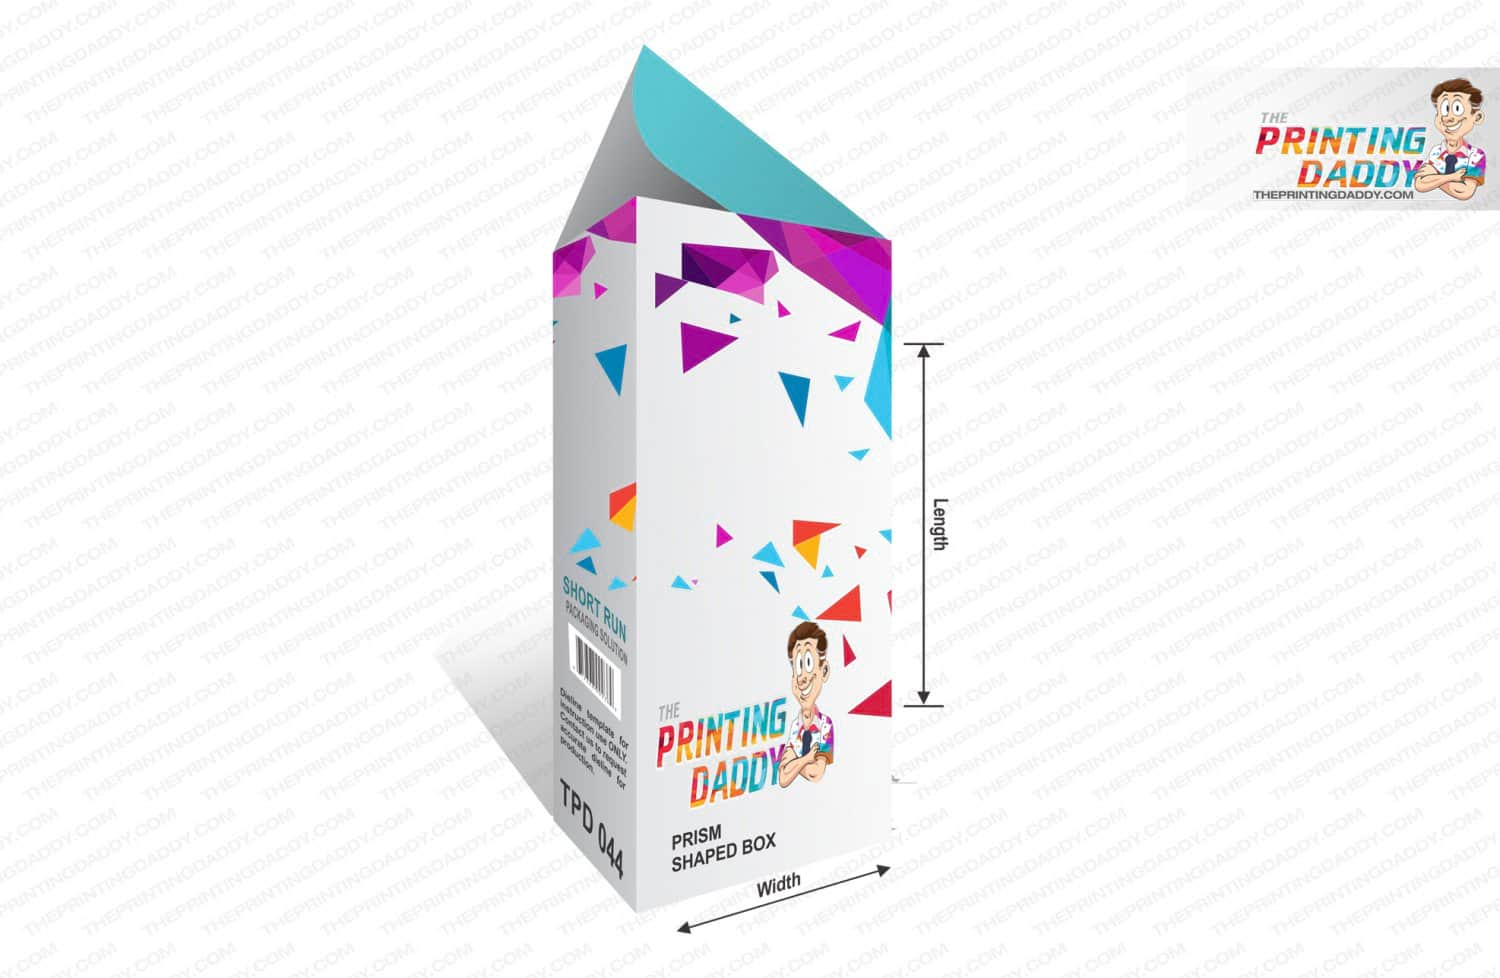 Prism Shaped Box The Printing Daddy